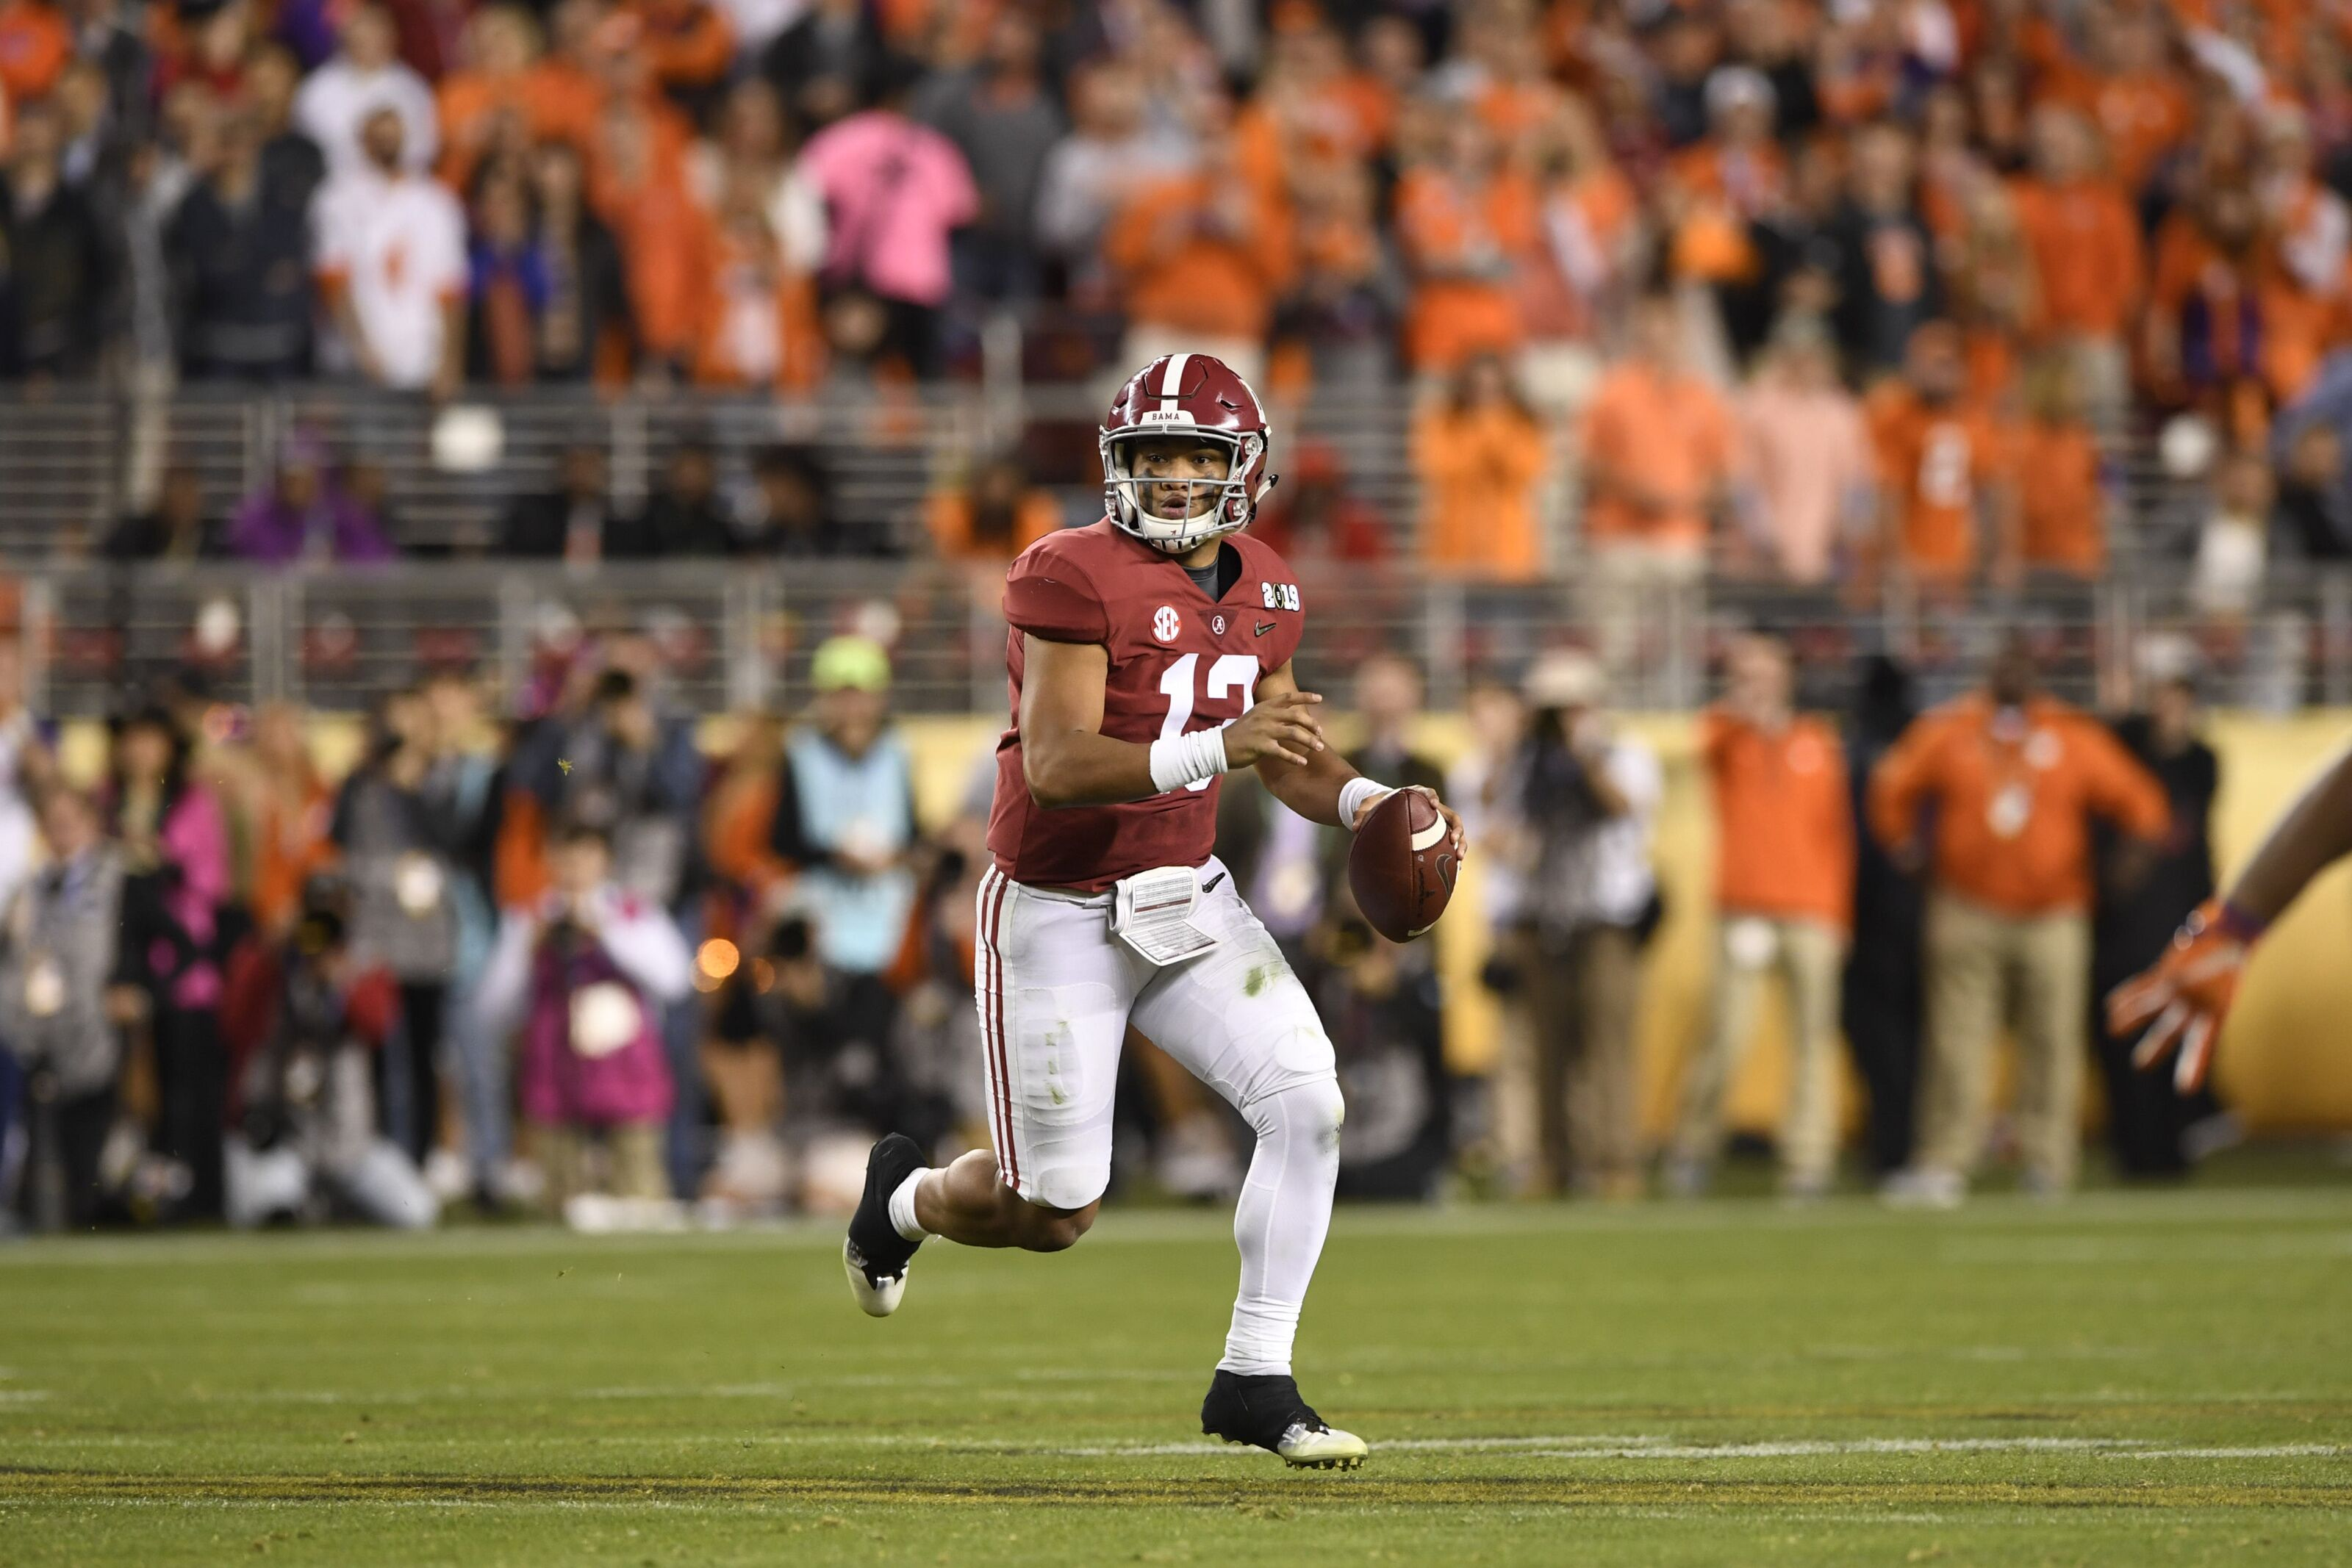 NFL Draft: Dolphins passing on a quarterback confirms they're tanking for Tua